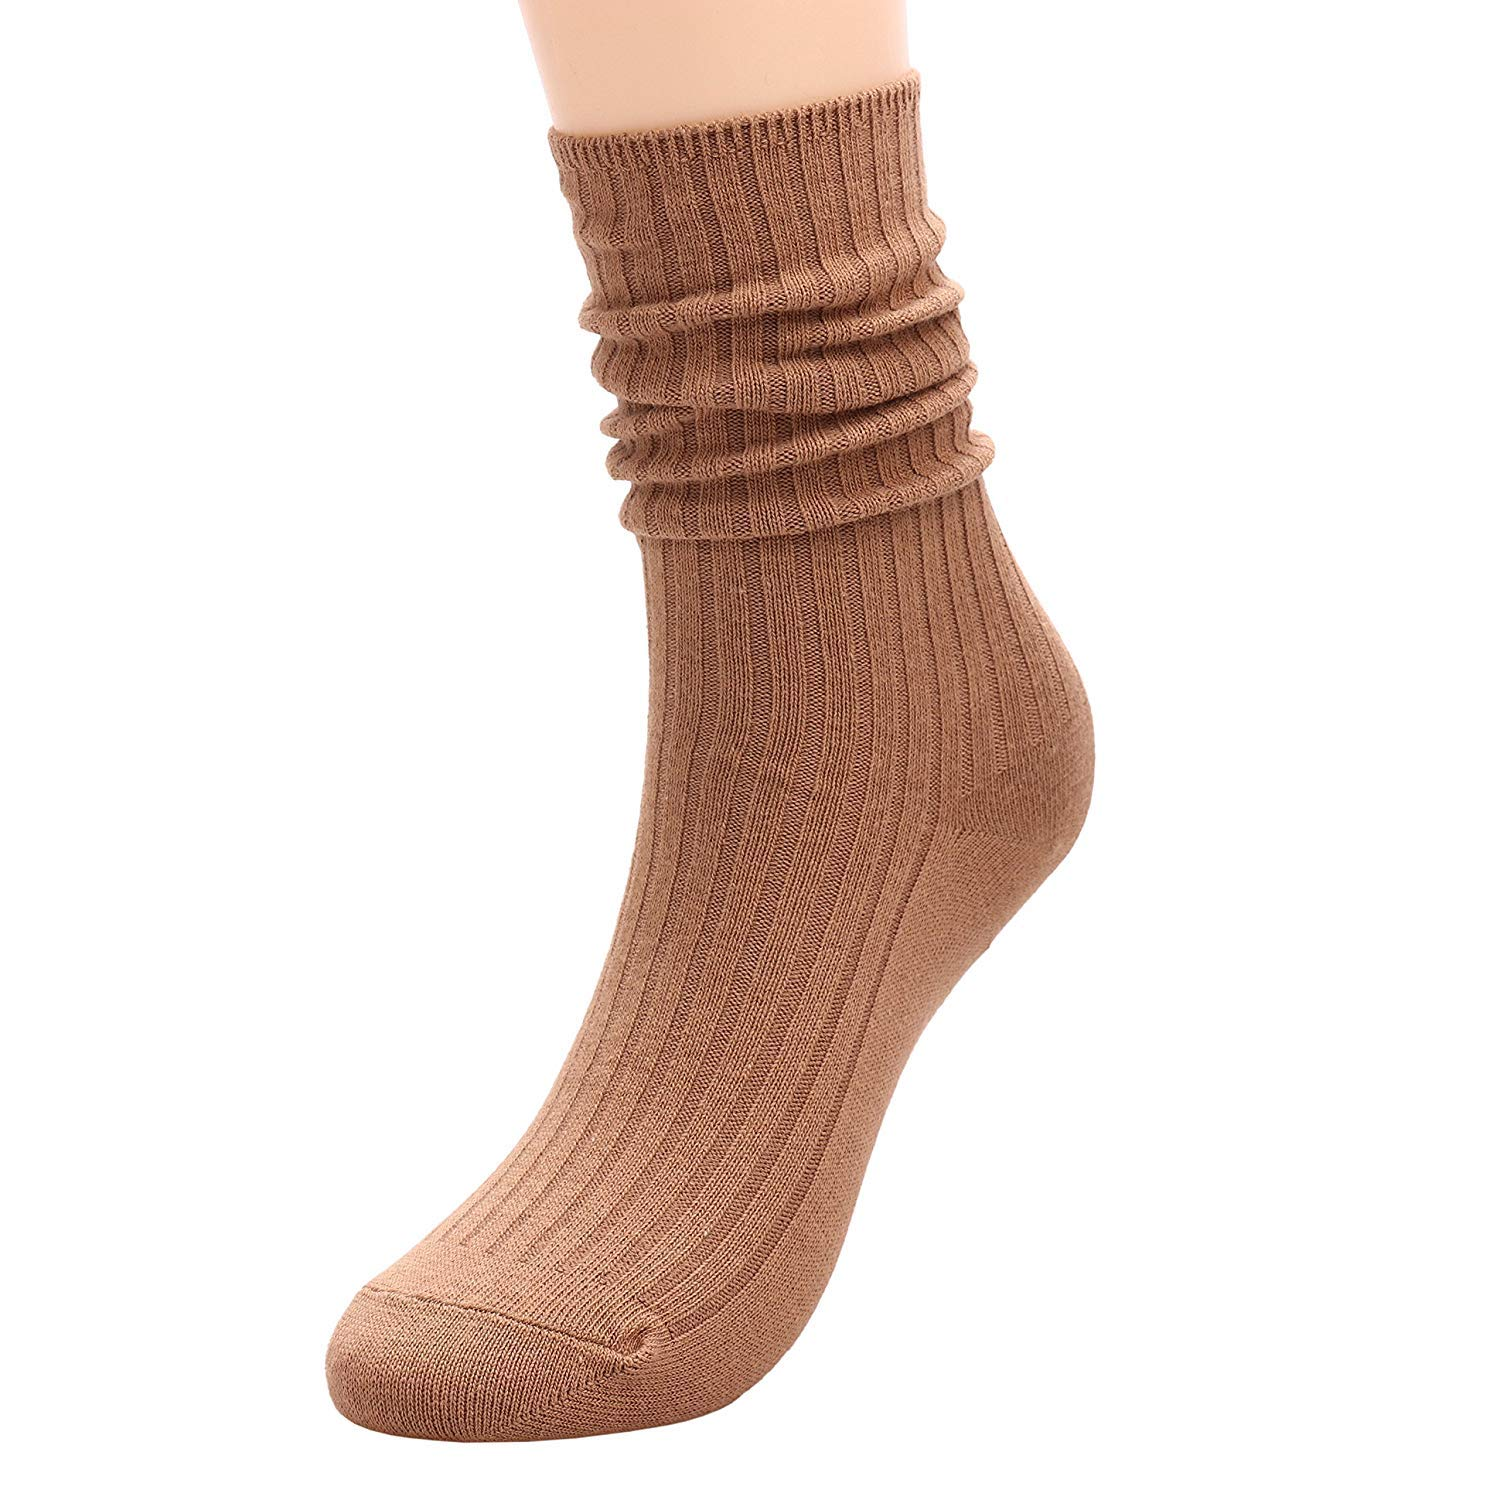 Garsumiss Women Men 6-Pack Thin Plain Coloured Cotton Ankle Socks Size 3-7 UK